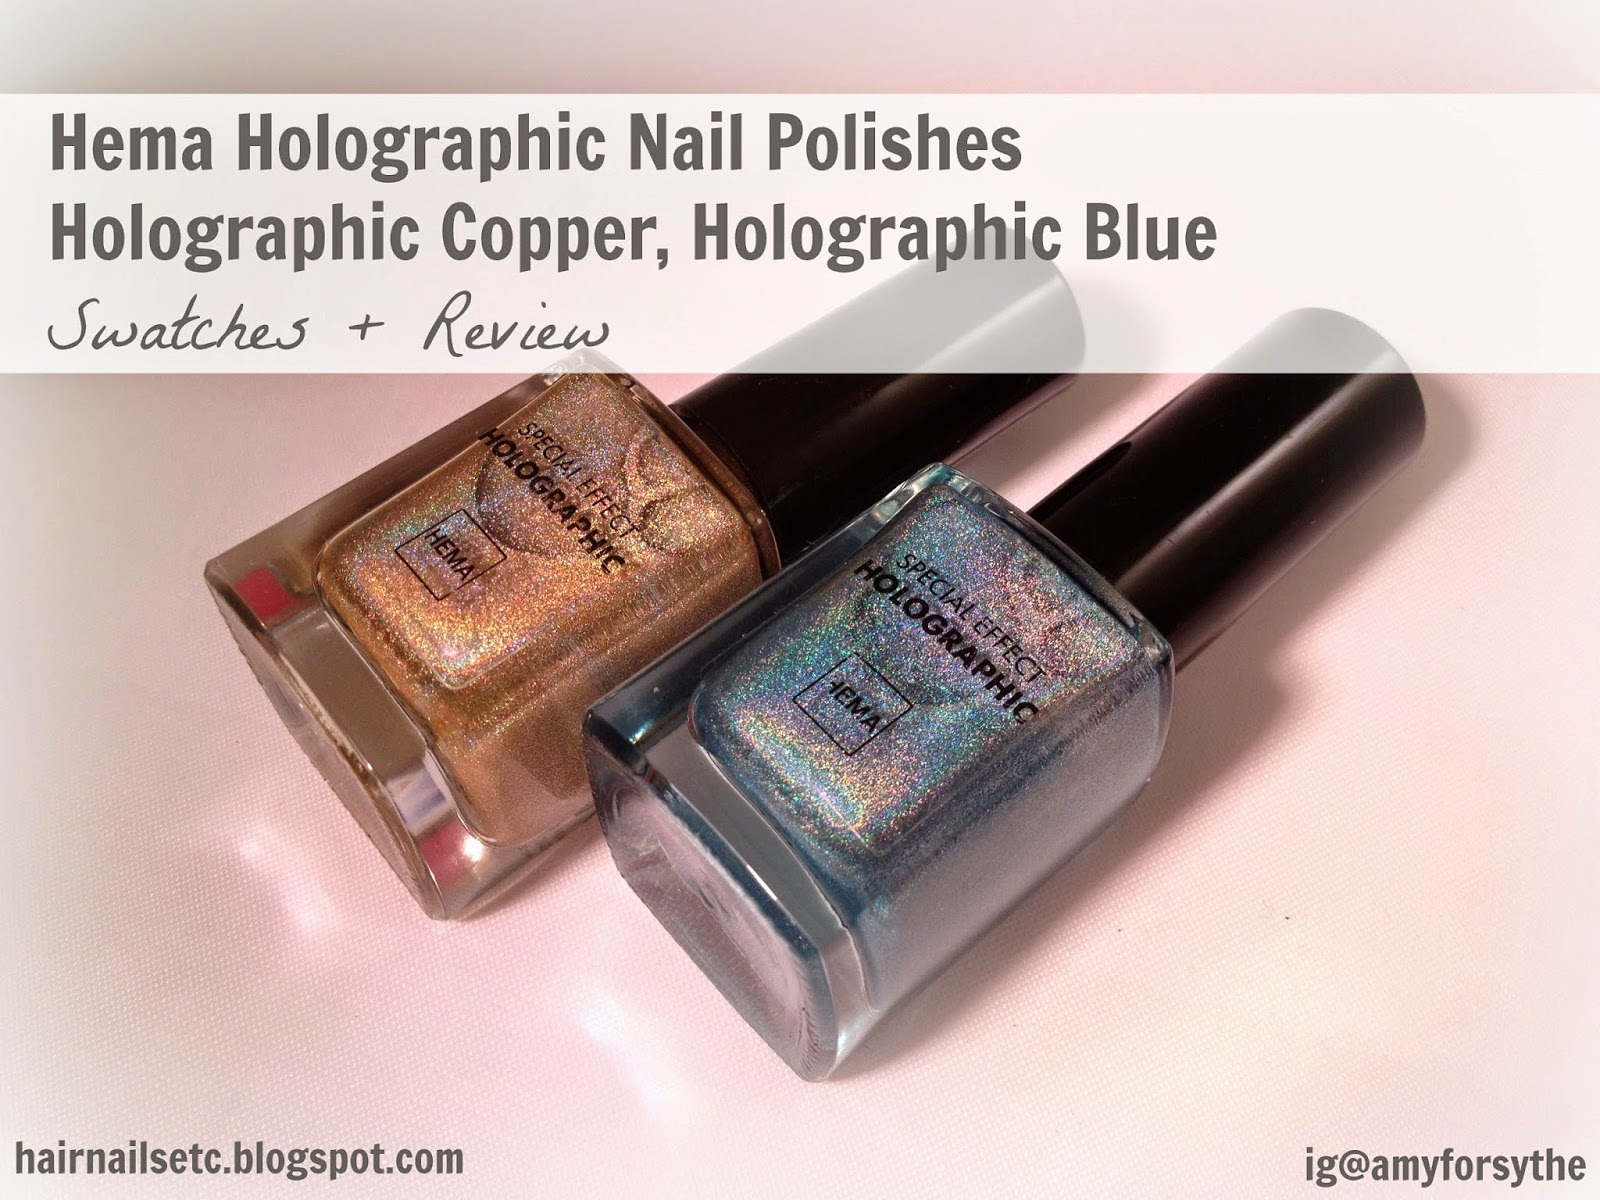 Hema, holographic, nail polish, 52, holographic copper, 53, holographic blue, swatches and review